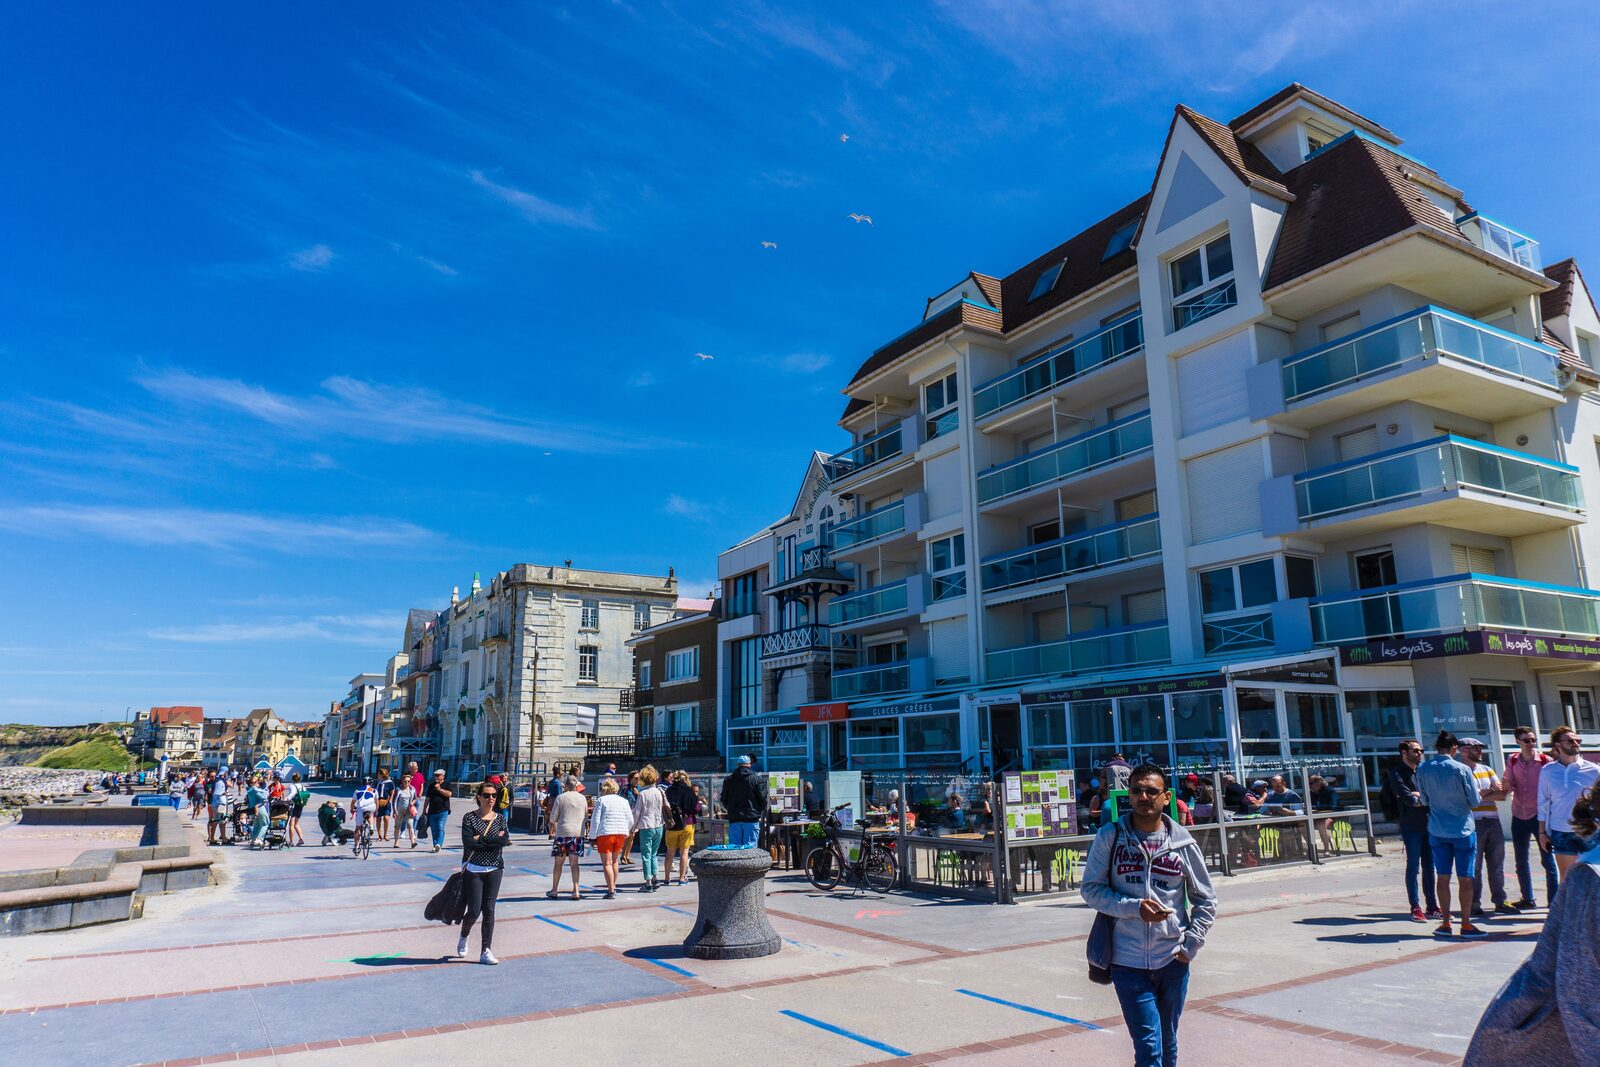 Restaurants on the Opal Coast in Wimereux on a busy day.